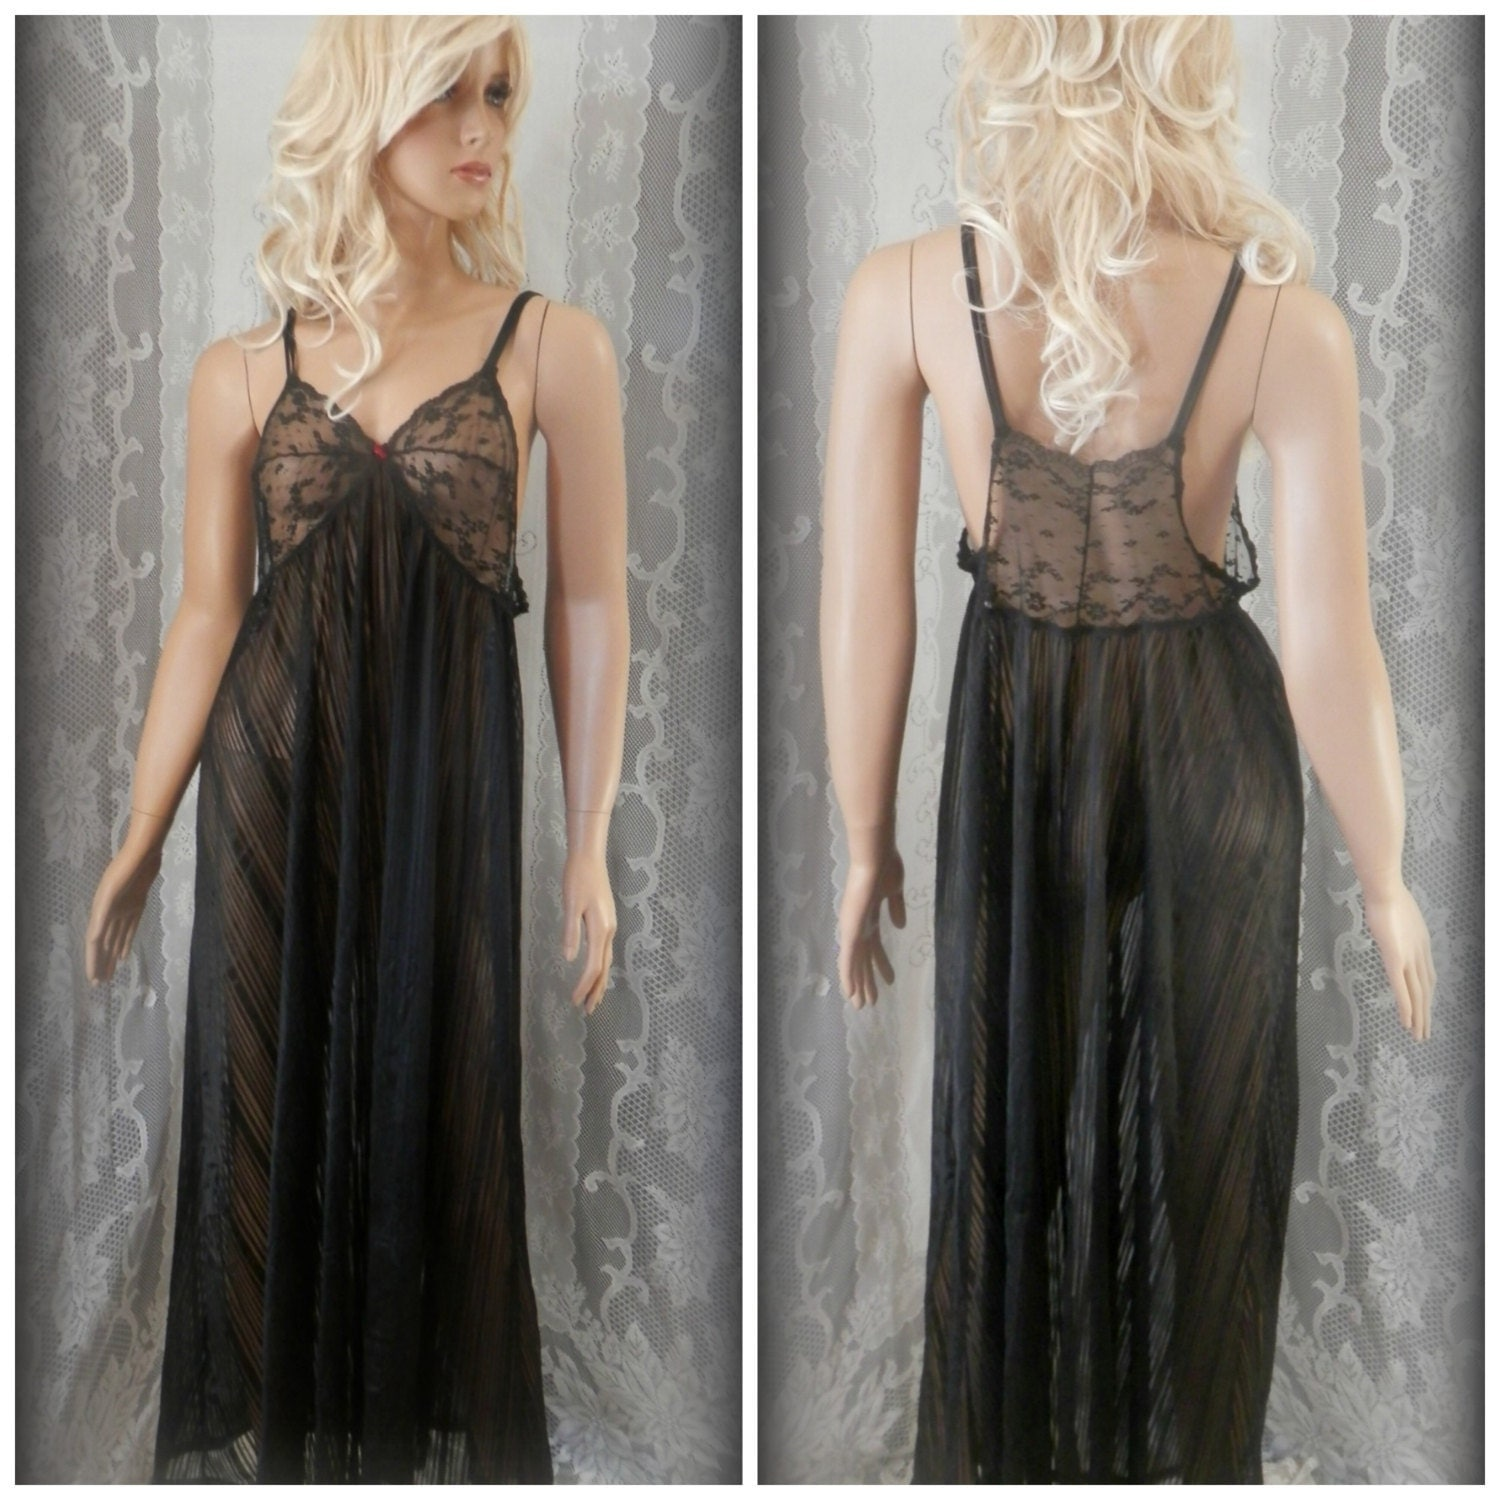 see thru nightgown eBay